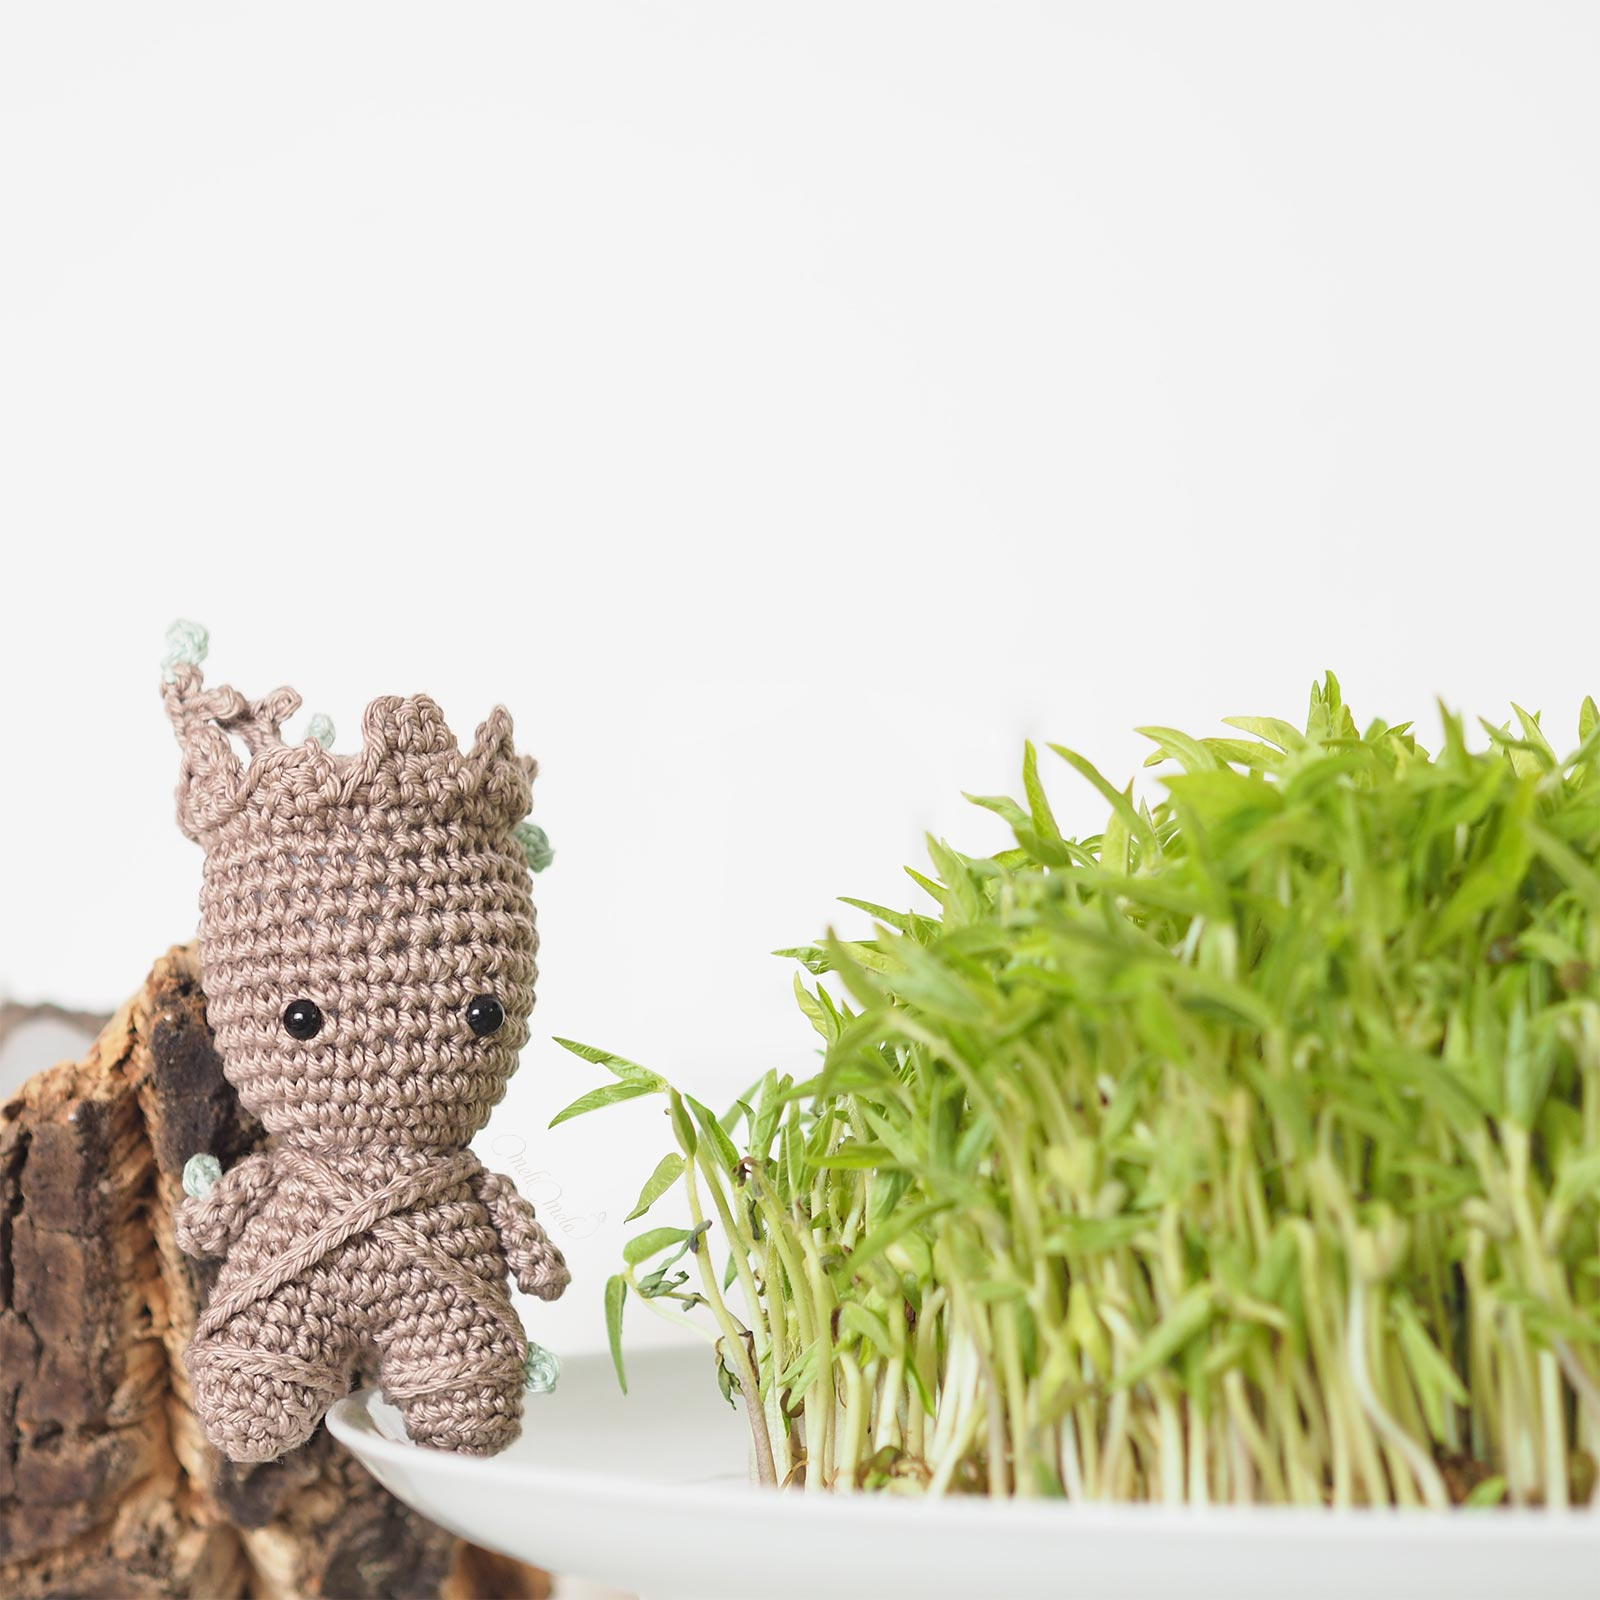 baby groot crochet marvel pousses fraîches soja germoir laboutiquedemelimelo